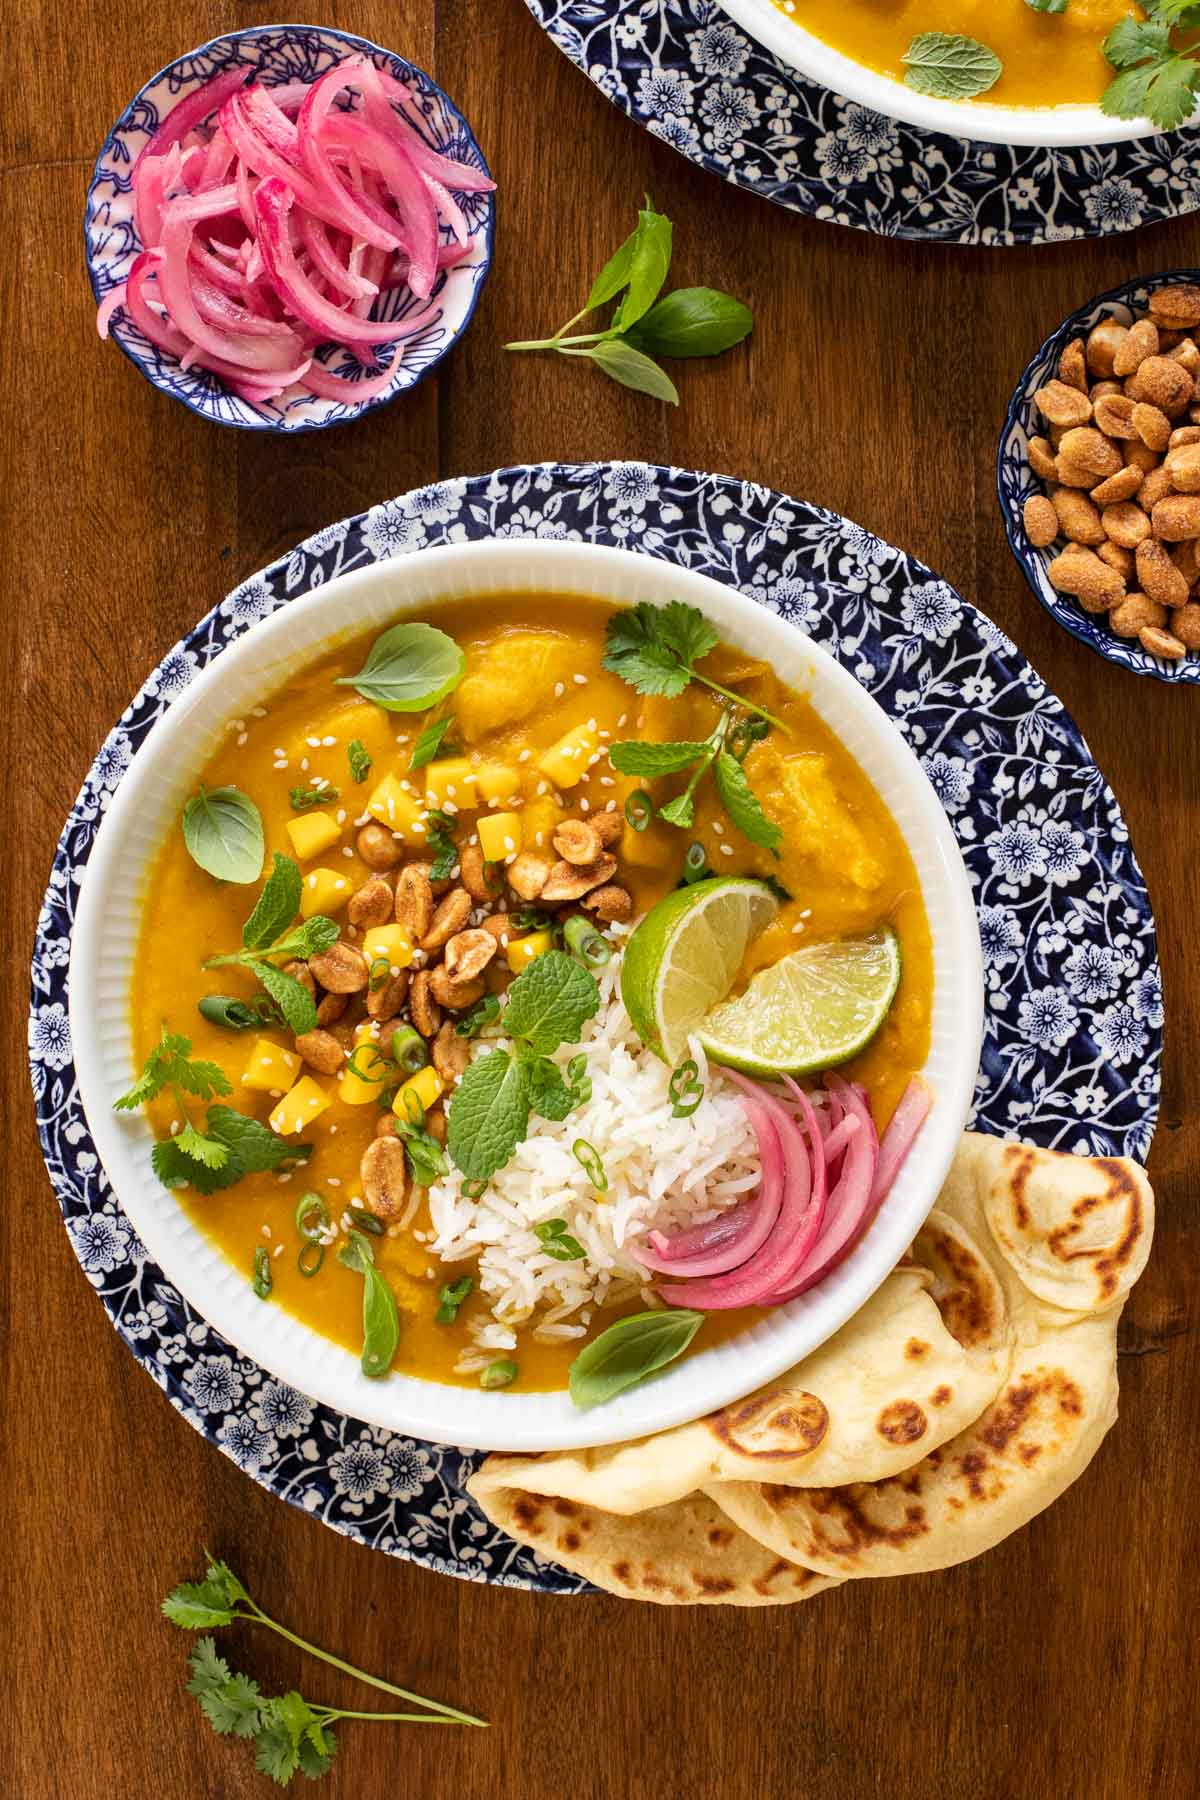 Overhead vertical photo of Butternut Chicken Coconut Curry in a blue and white patterned serving bowl garnished with toppings and naan bread on the side.